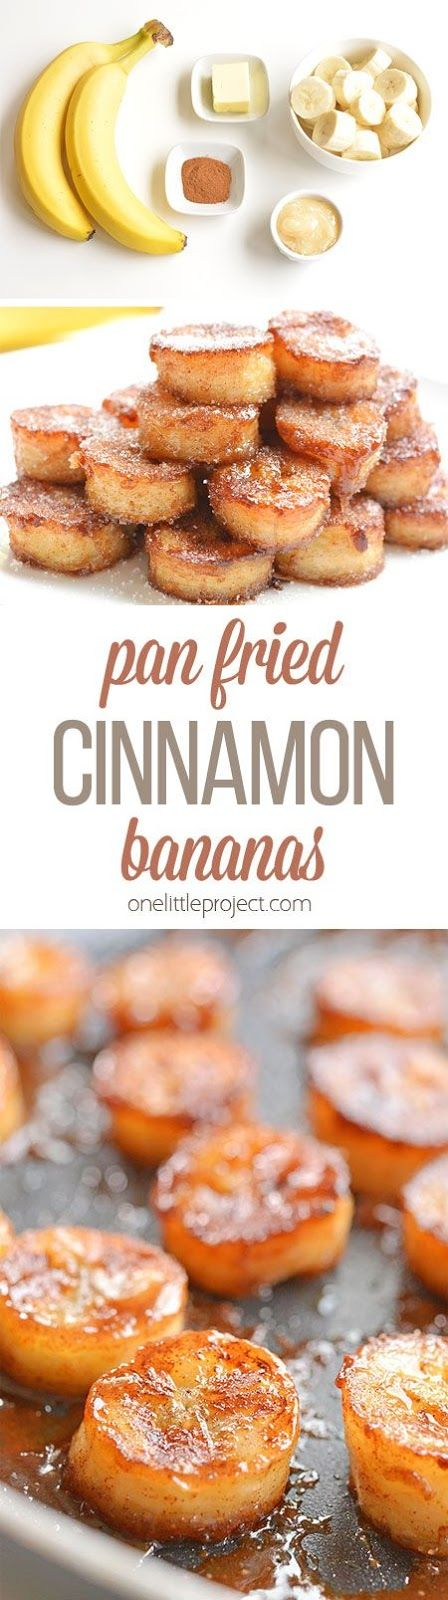 Pan Fried Cinnamon Bananas | Ai Cuisine